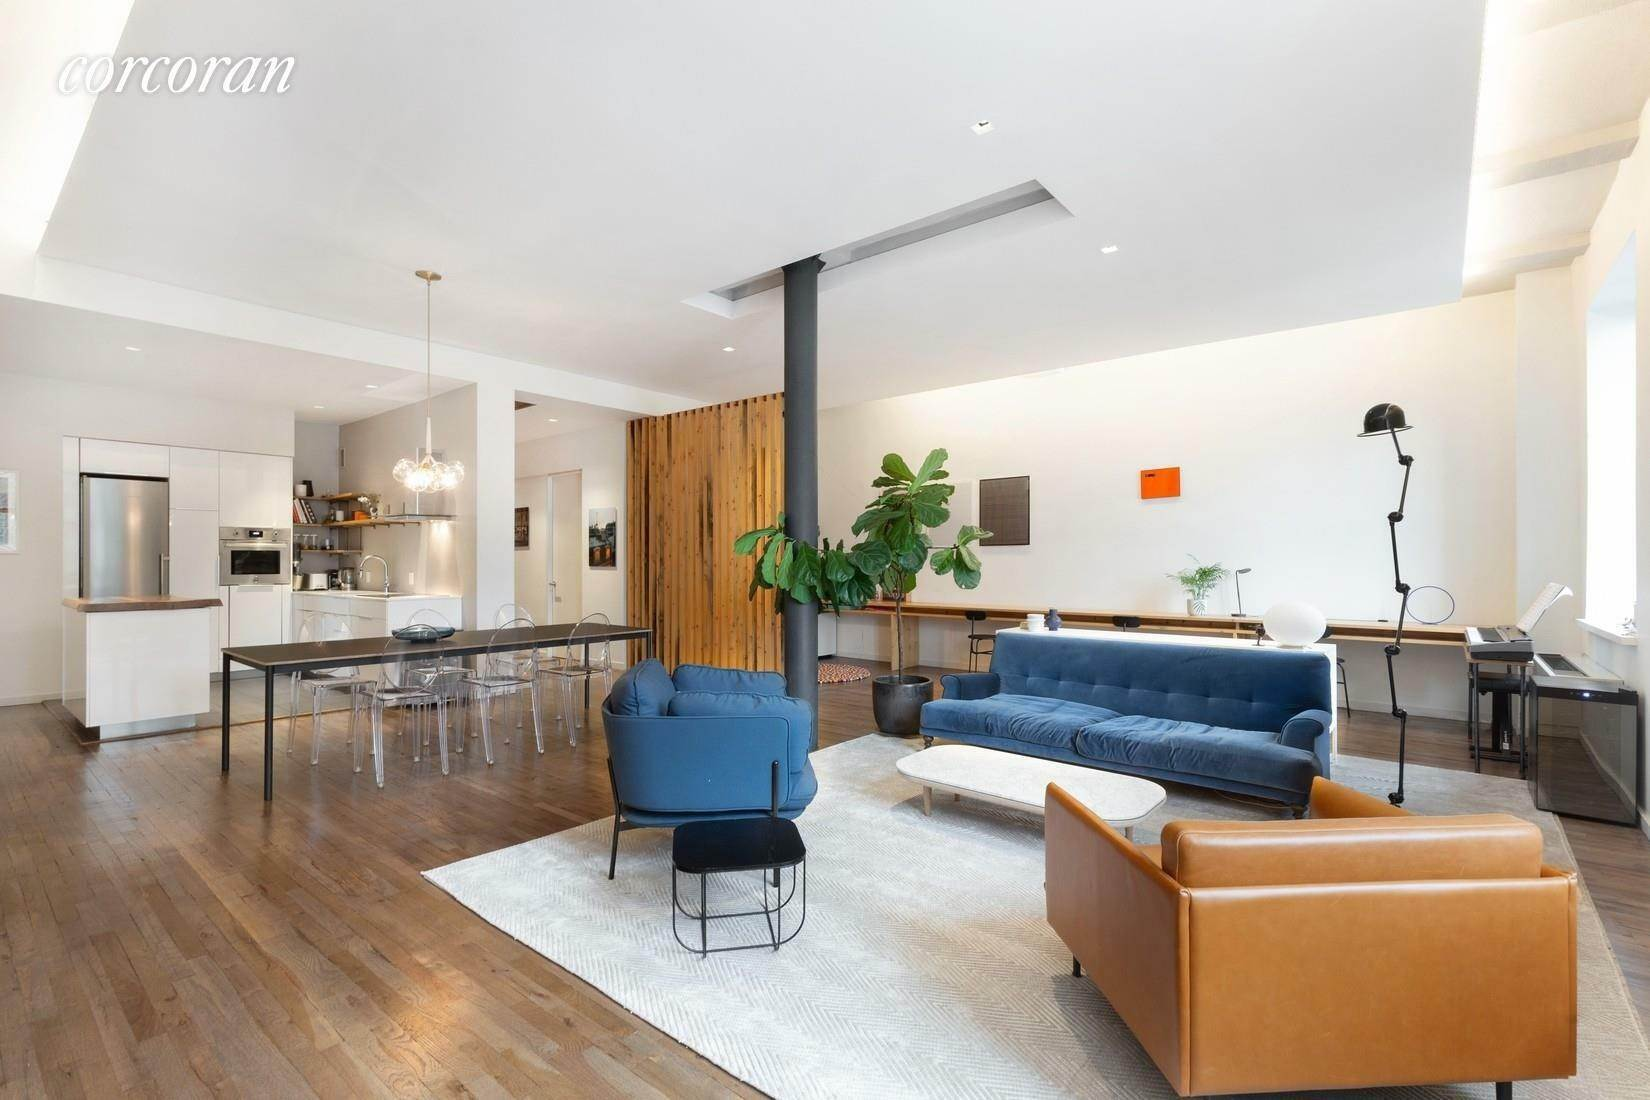 Co-op property for Sale at 28 Old Fulton Street, 3KL Brooklyn, New York,11201 United States